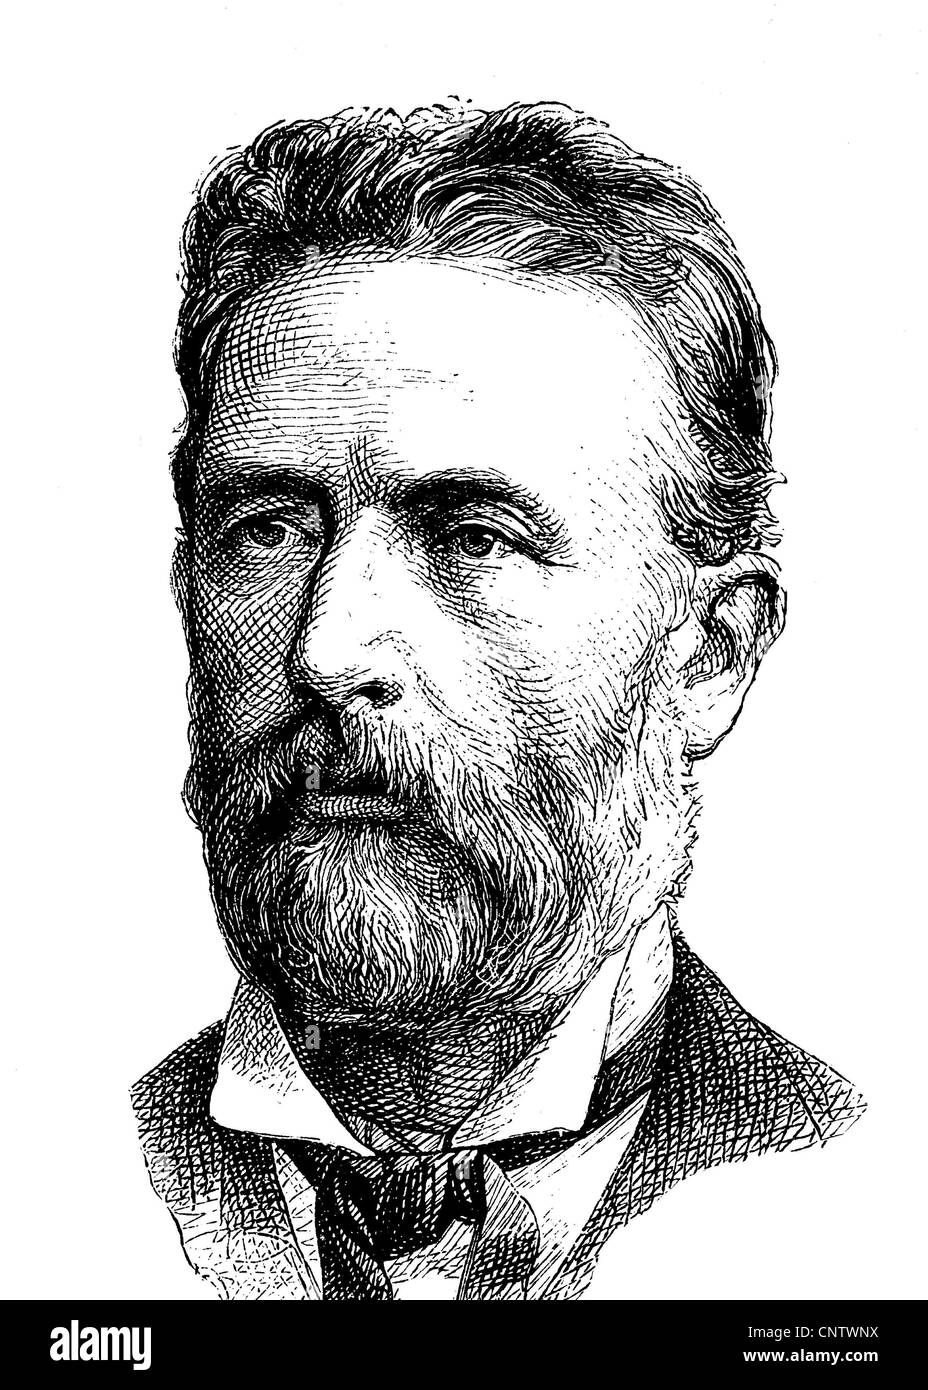 Philipp Wilhelm Adolf Bastian, 1826-1905, a German anthropologist and founding director of the Museum of Ethnology - Stock Image